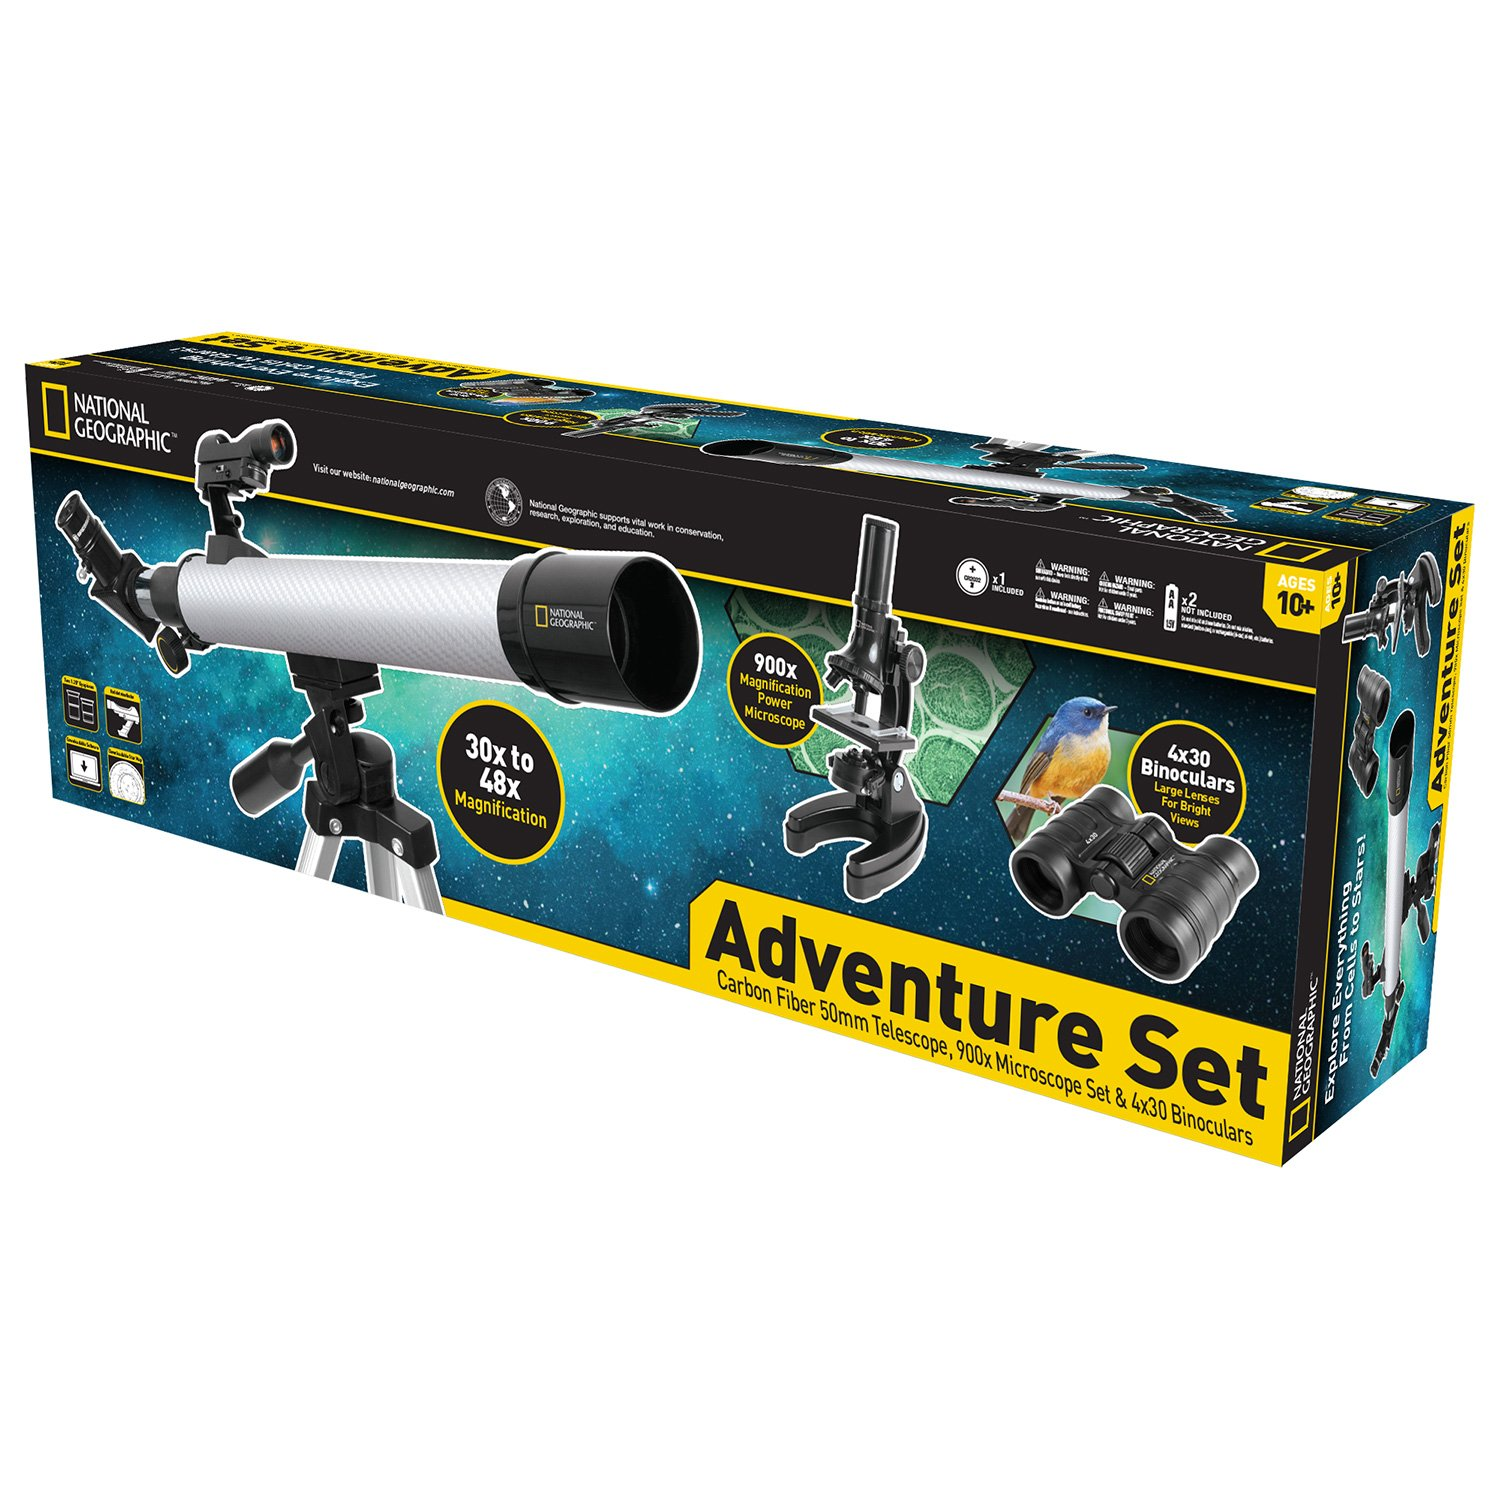 Explore Scientific National Geographic Deluxe Adventure Set